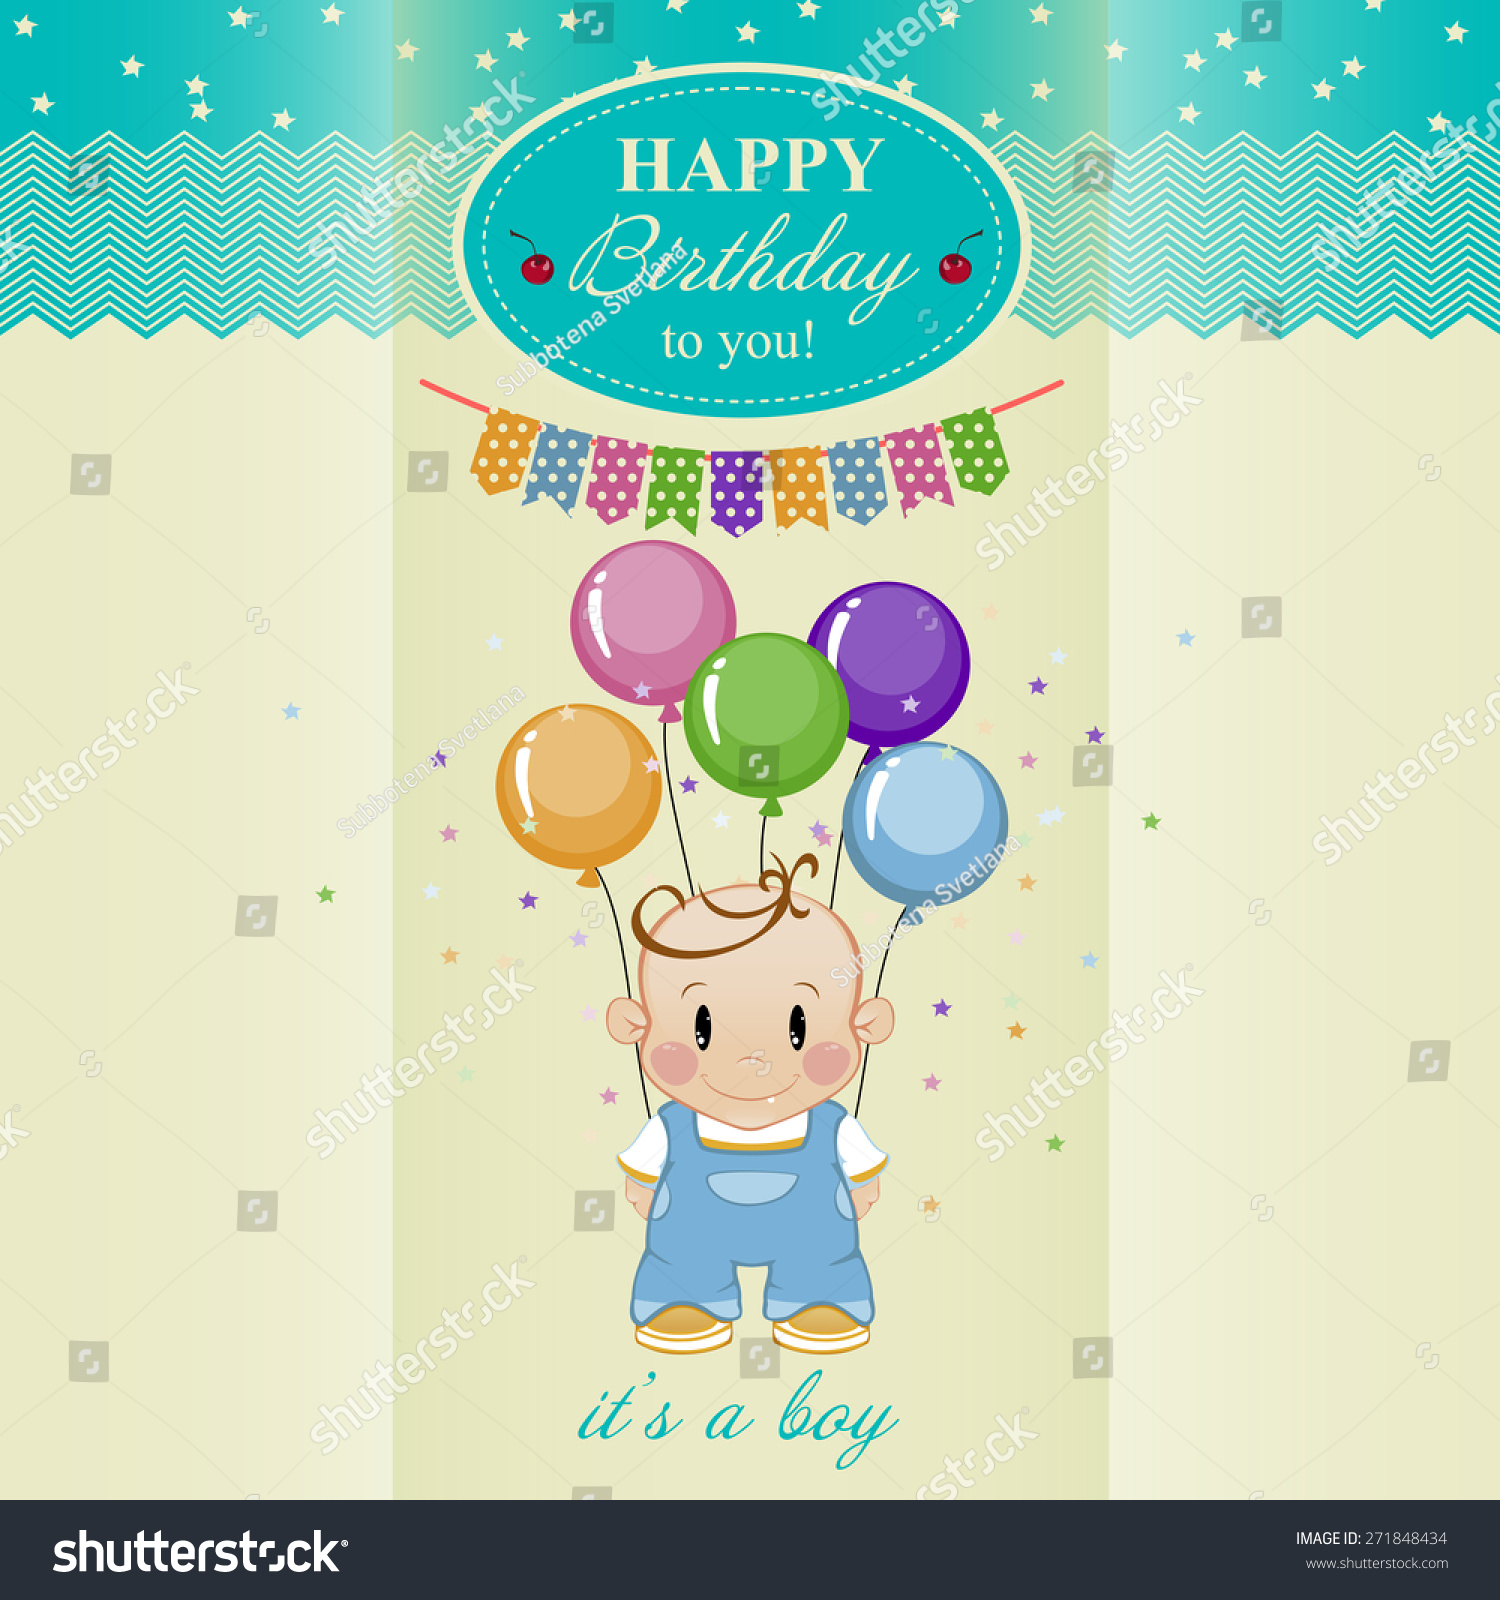 birthday card boys birthday stock vector   shutterstock, Birthday card